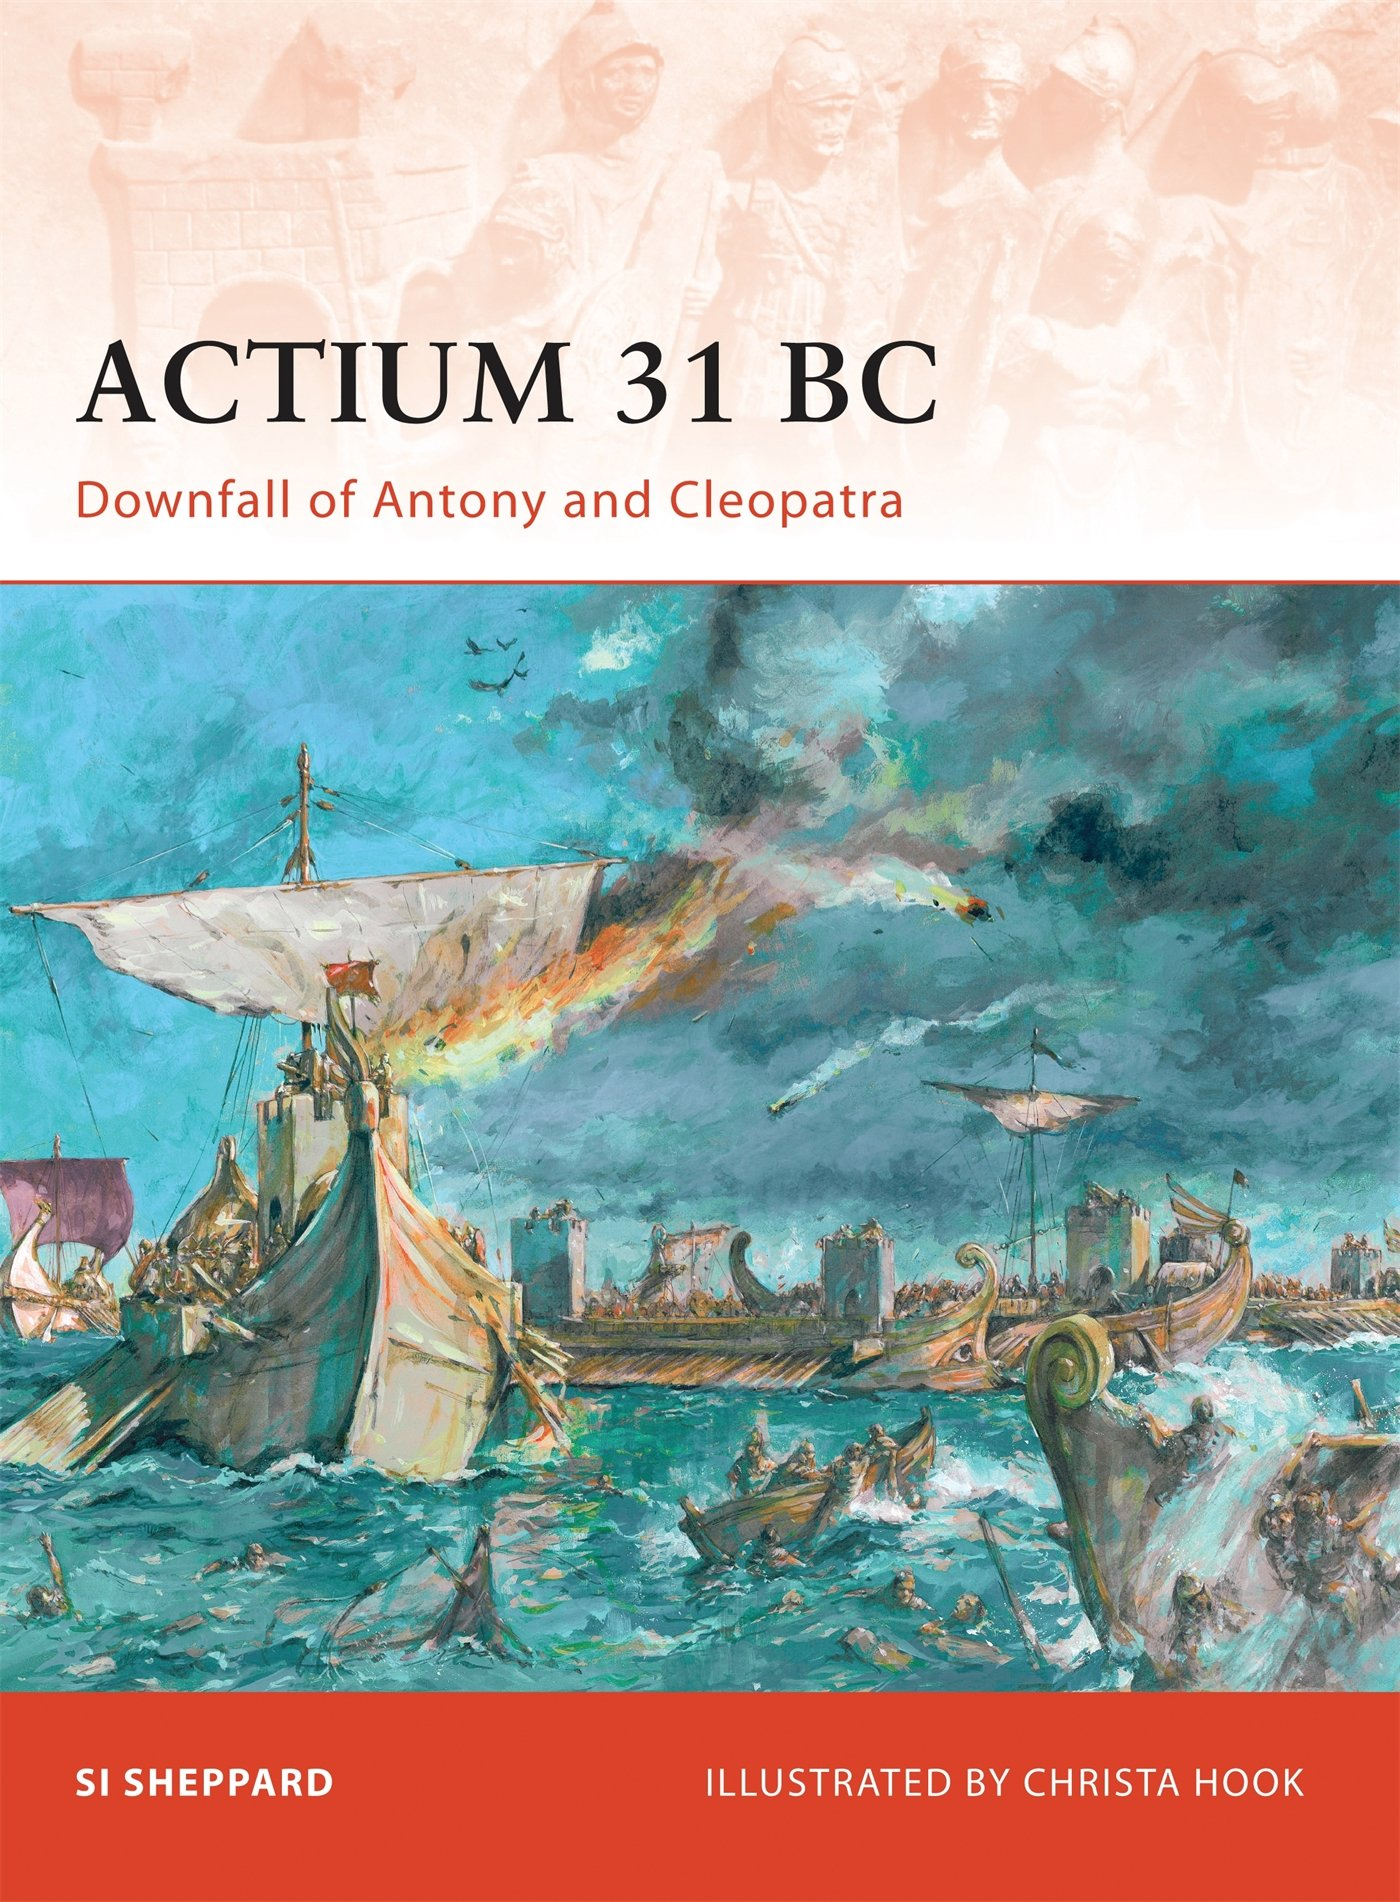 actium 31 bc downfall of antony and cleopatra campaign si actium 31 bc downfall of antony and cleopatra campaign si sheppard christa hook 9781846034053 com books